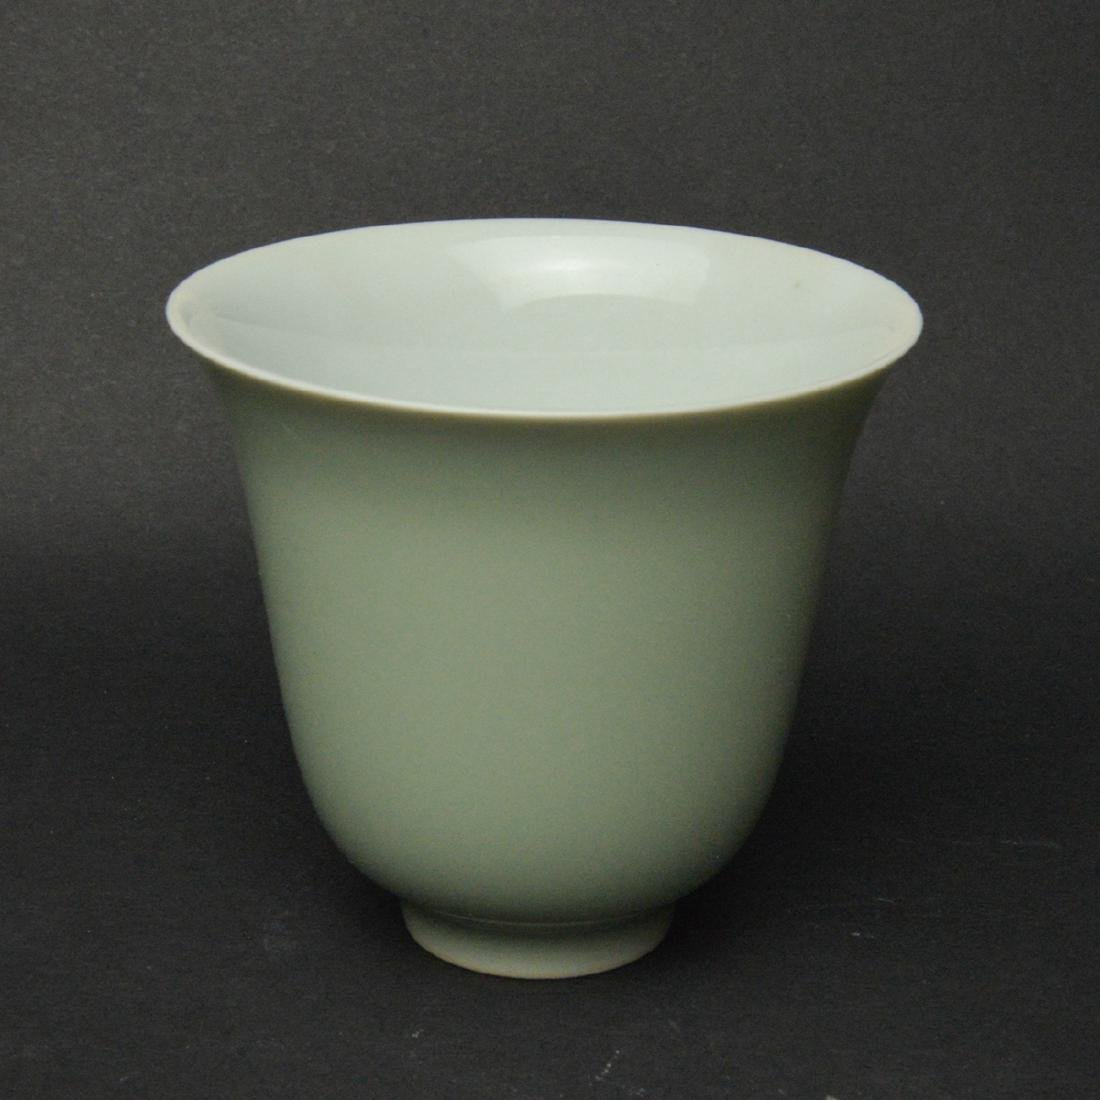 CHINESE PORCELAIN CUPS, PAIR - 3